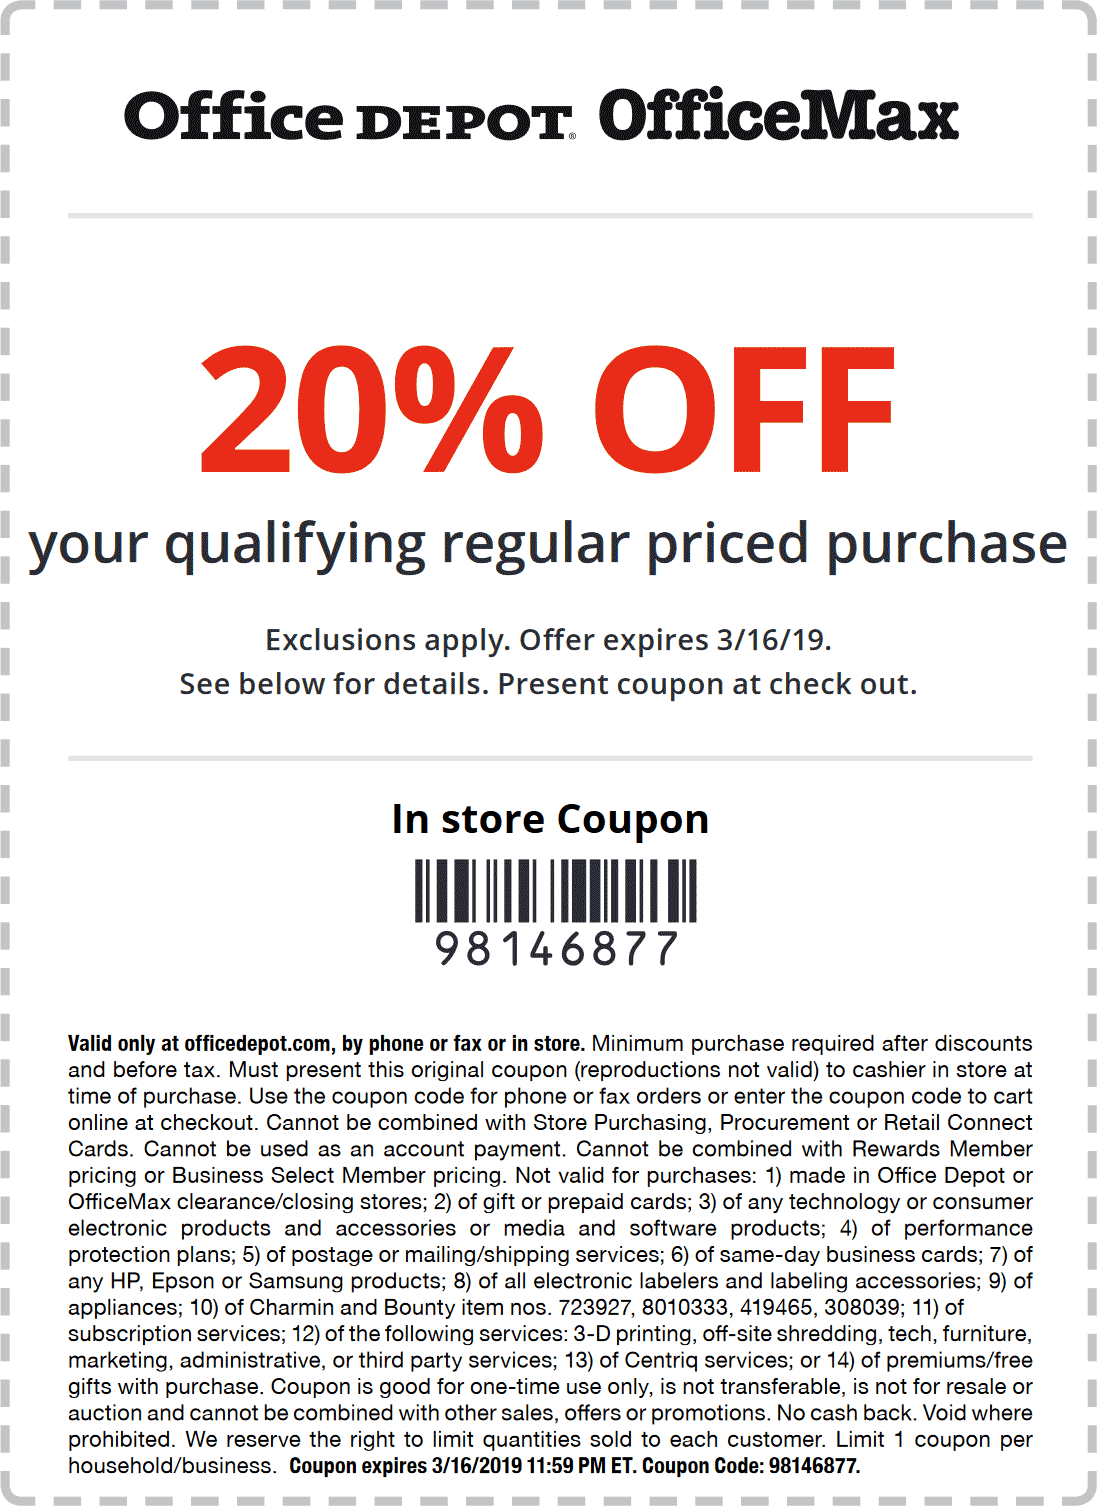 Office Depot Coupon November 2019 20% off at Office Depot, or online via promo code 98146877